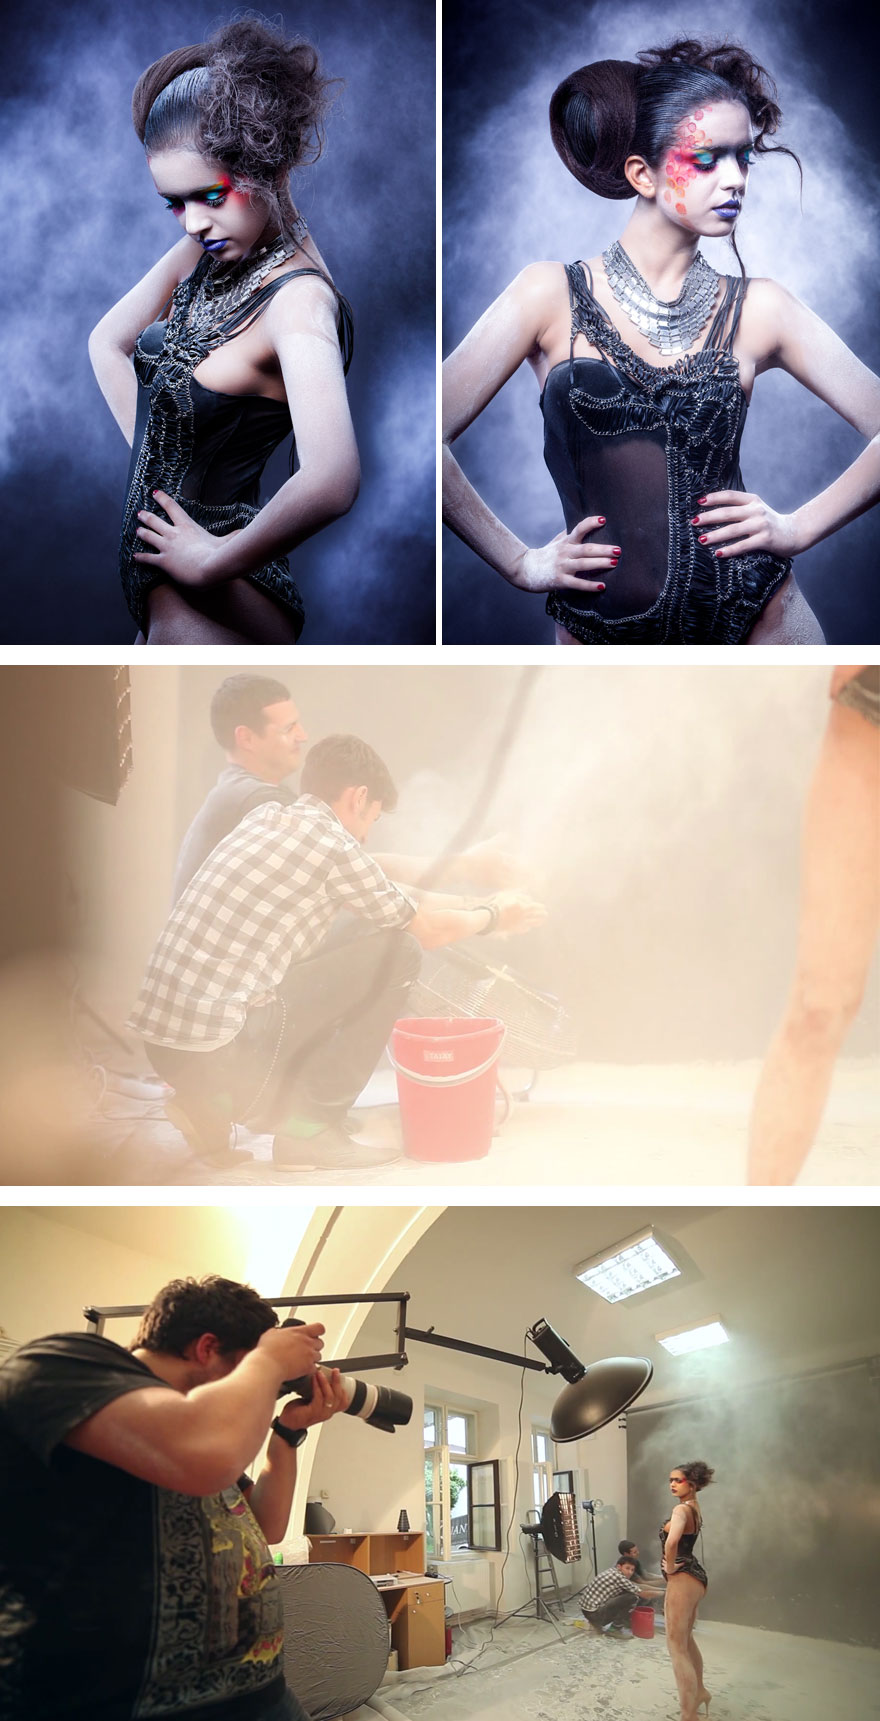 photography-behind-the-scenes-19-5773cc7f2f65b__880